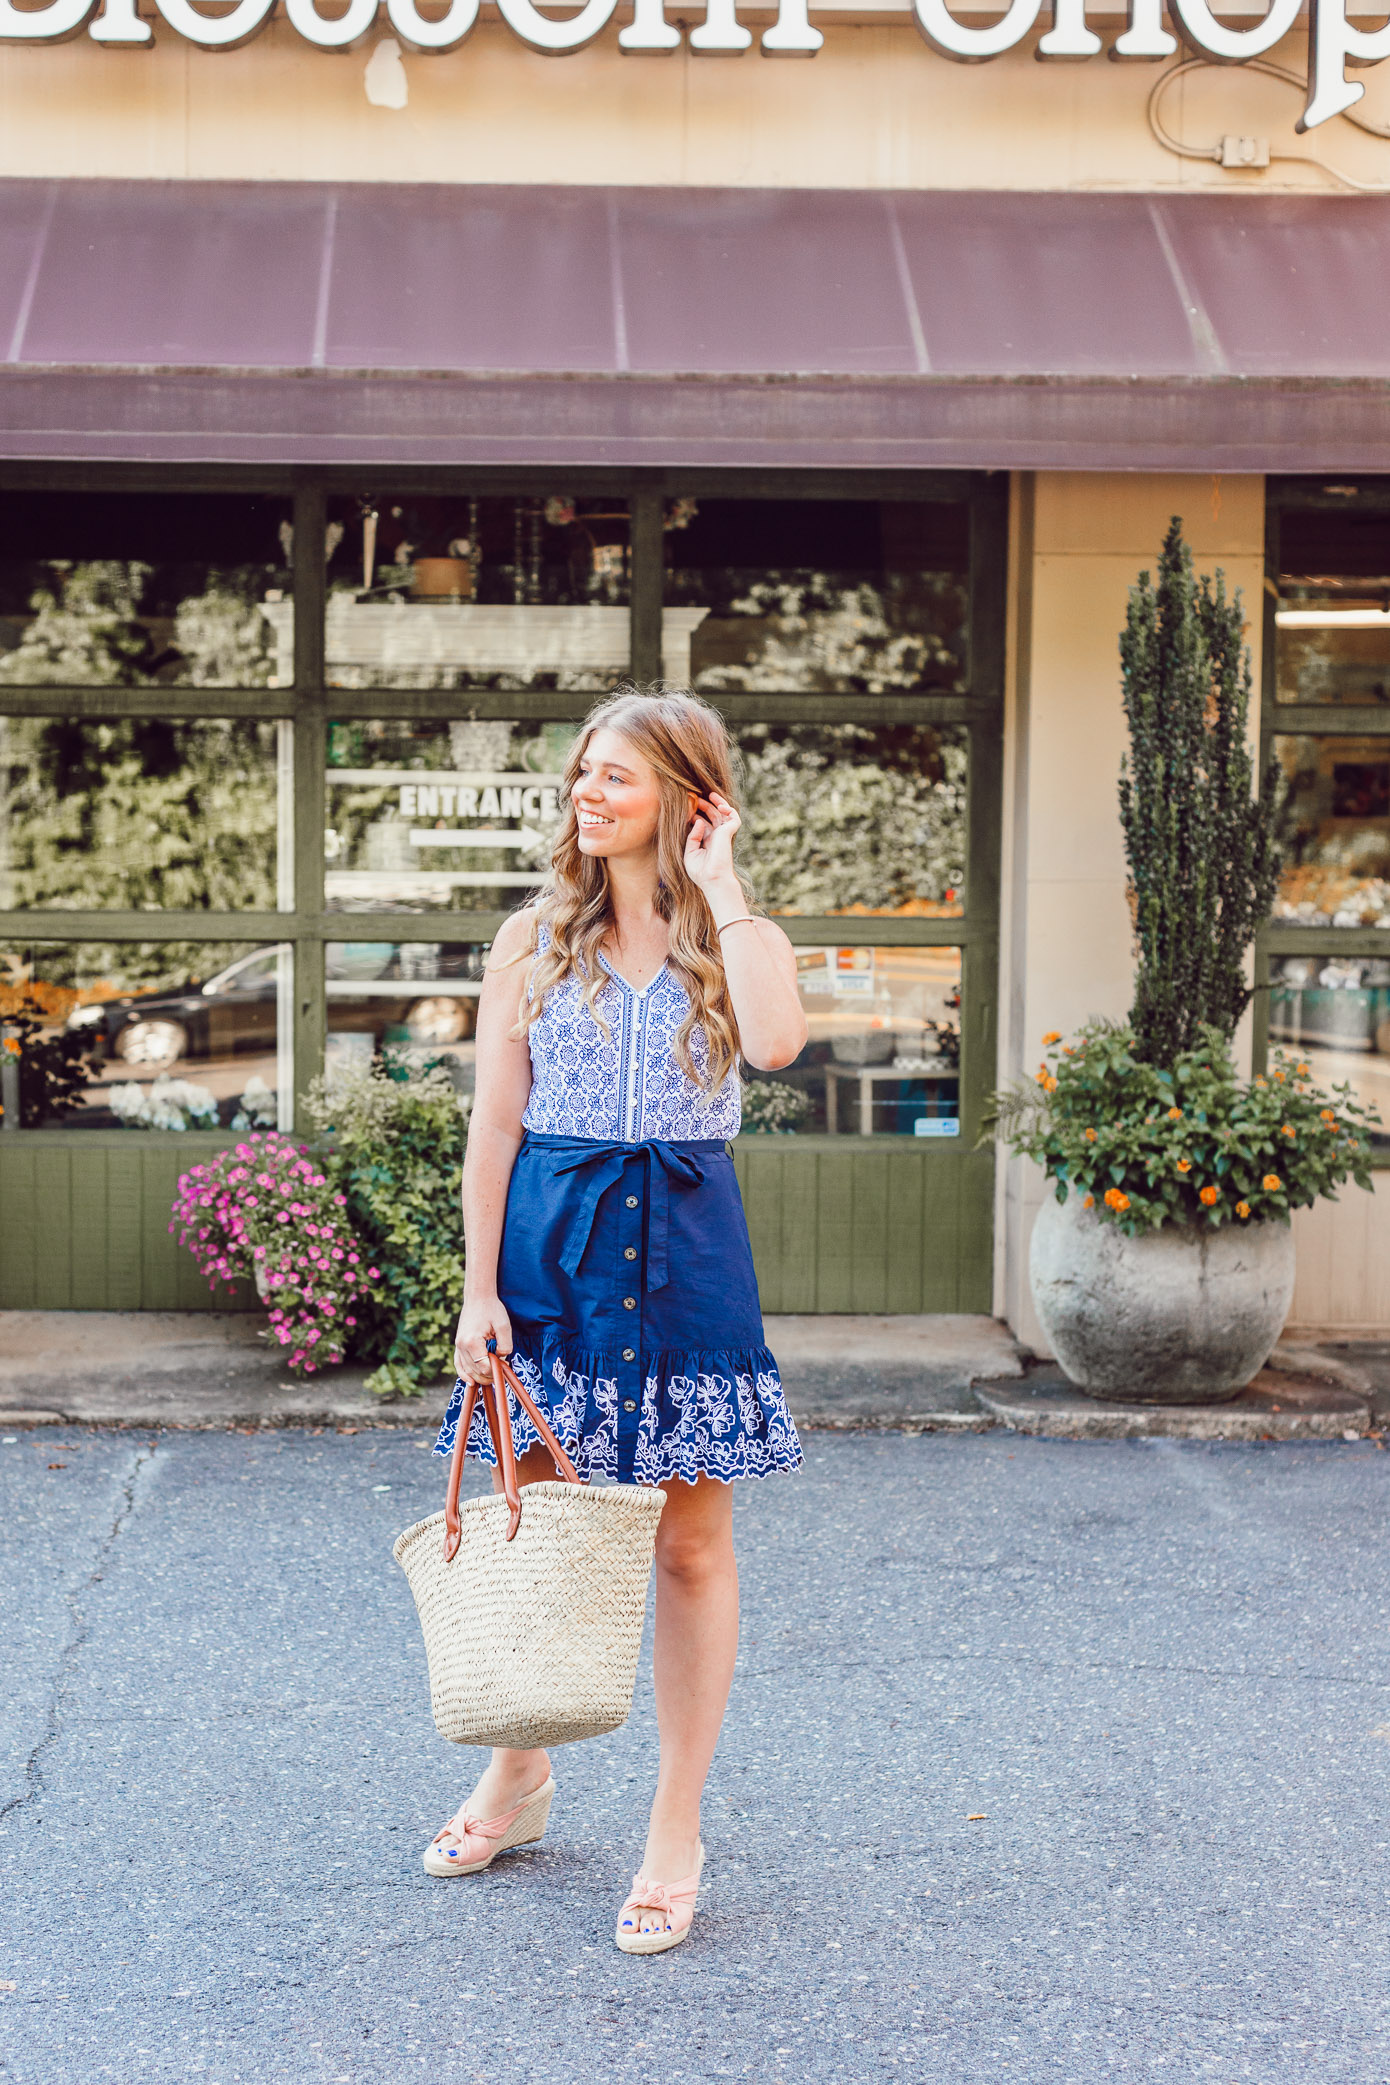 Summer Blues, My Favorite Blue and White Pieces